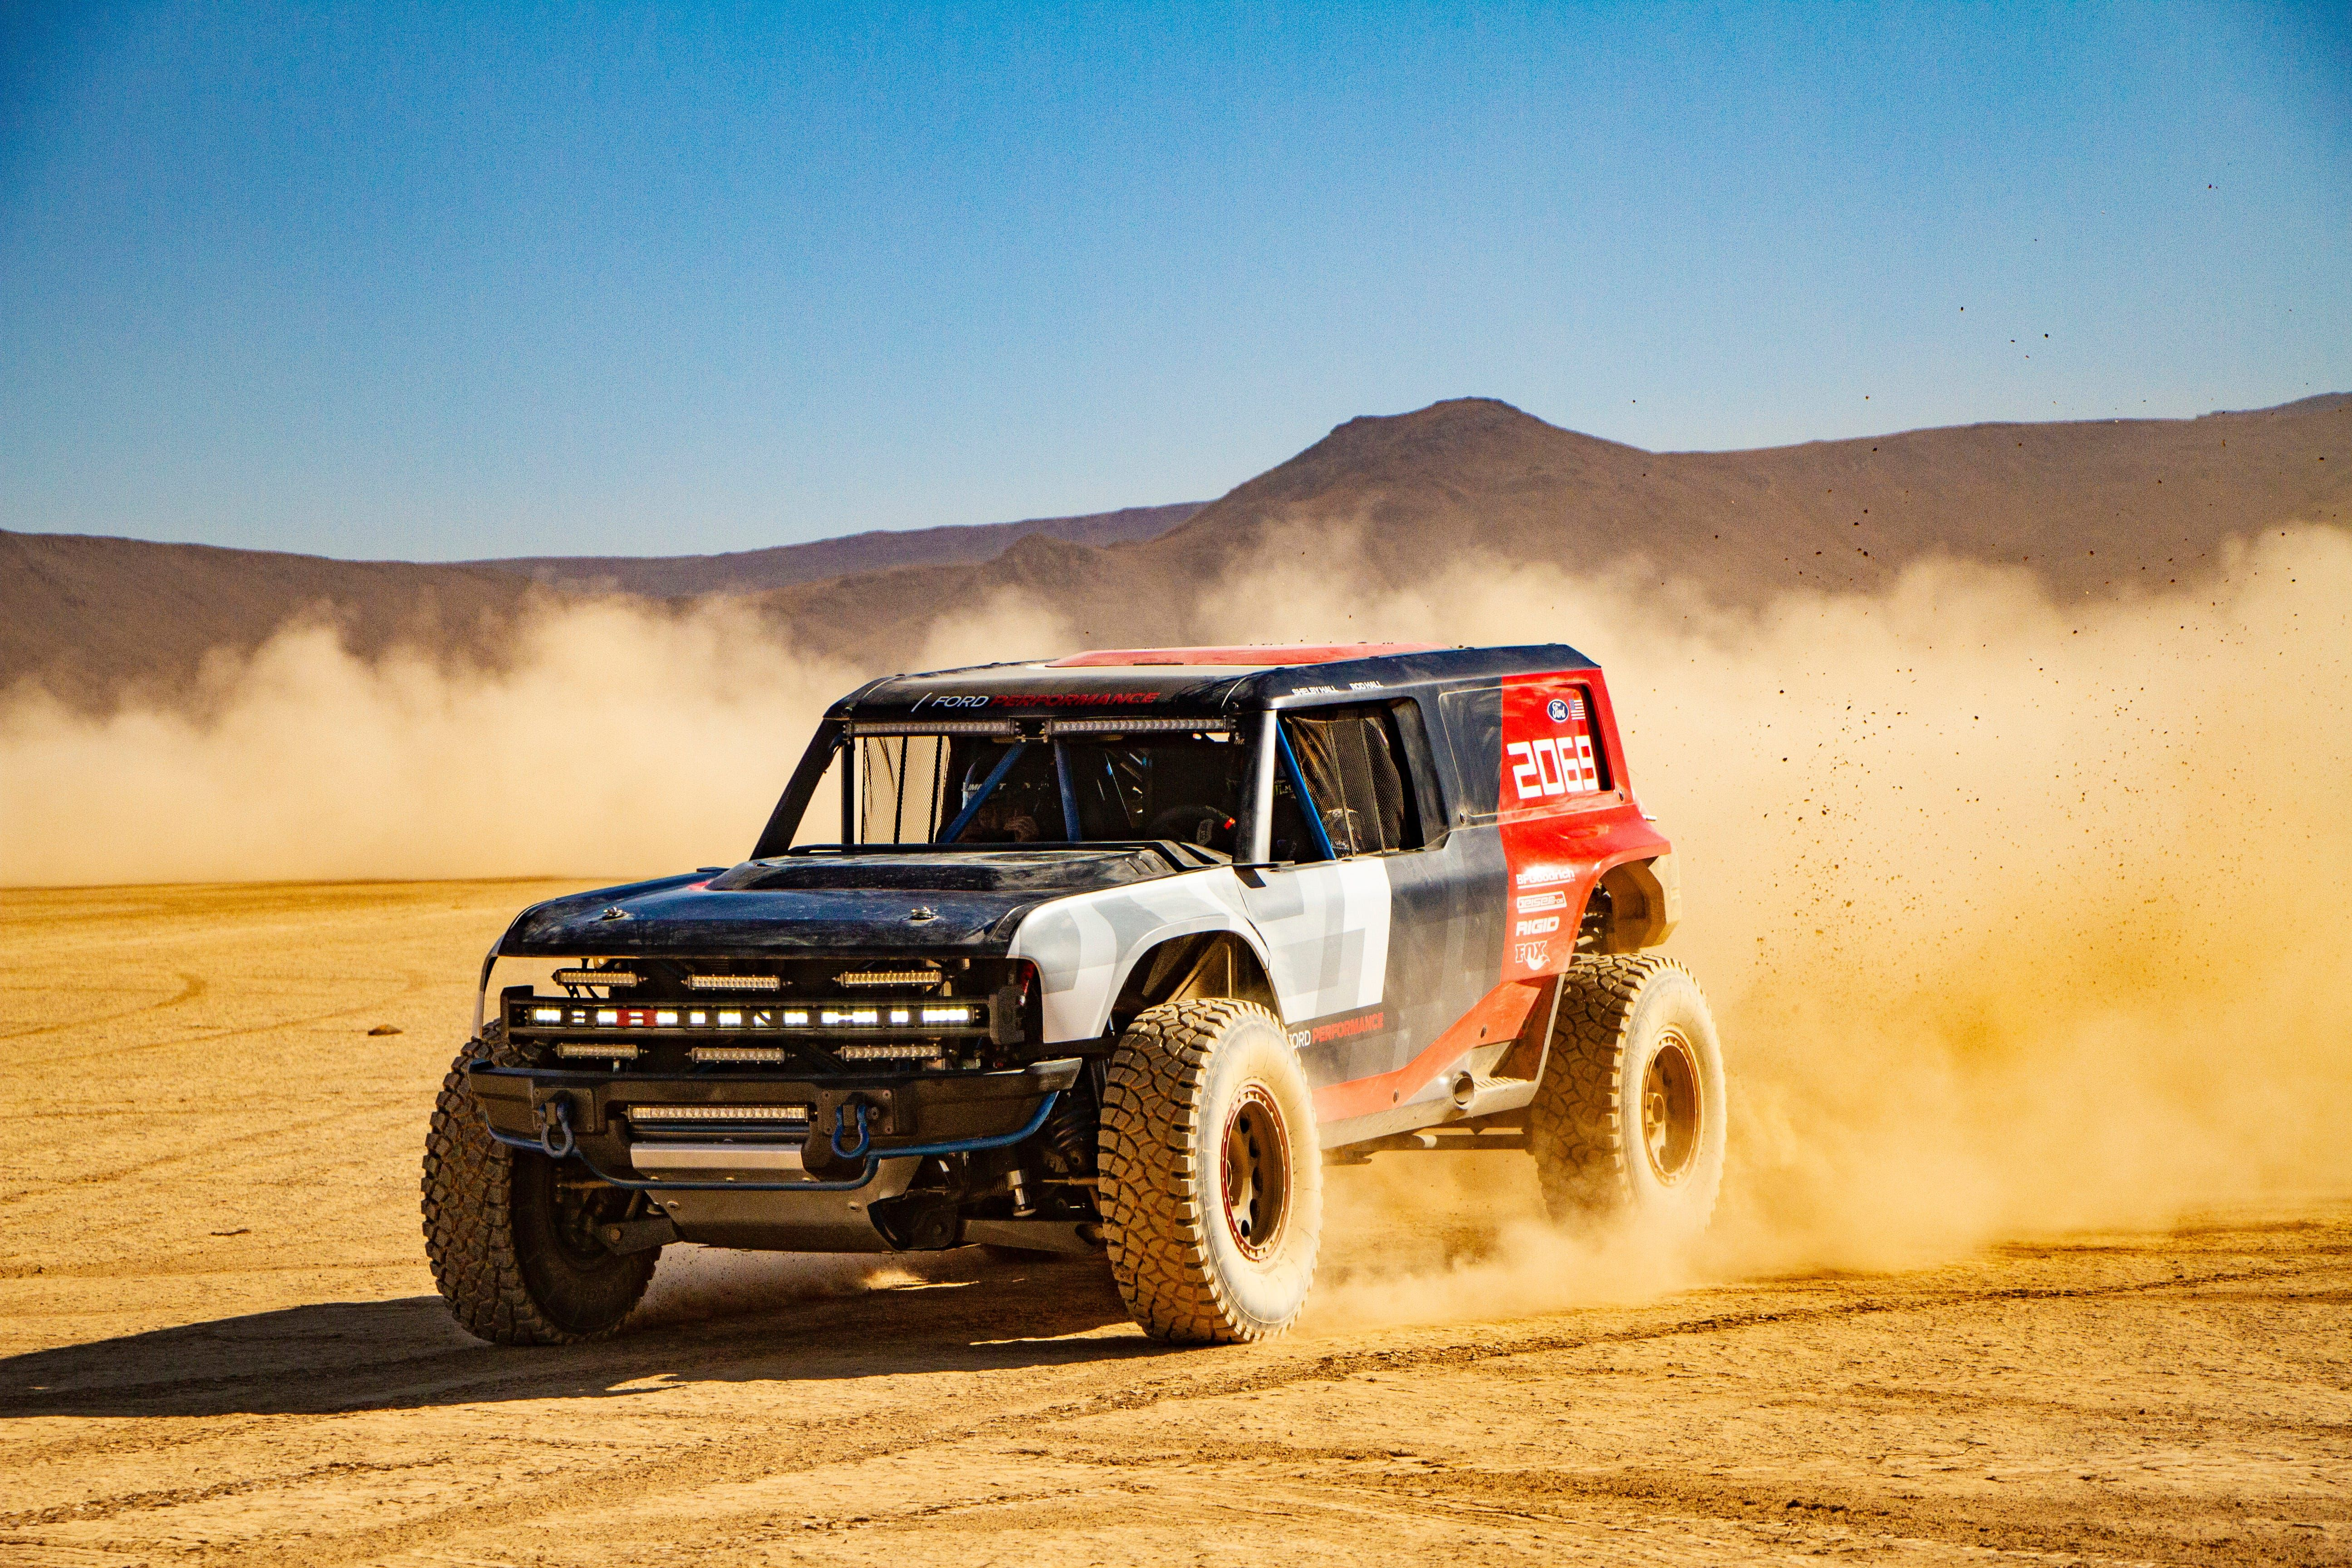 New Ford Bronco Oft Searched Online Despite Delayed Unveiling In 2020 Ford Bronco Bronco Ford Motor